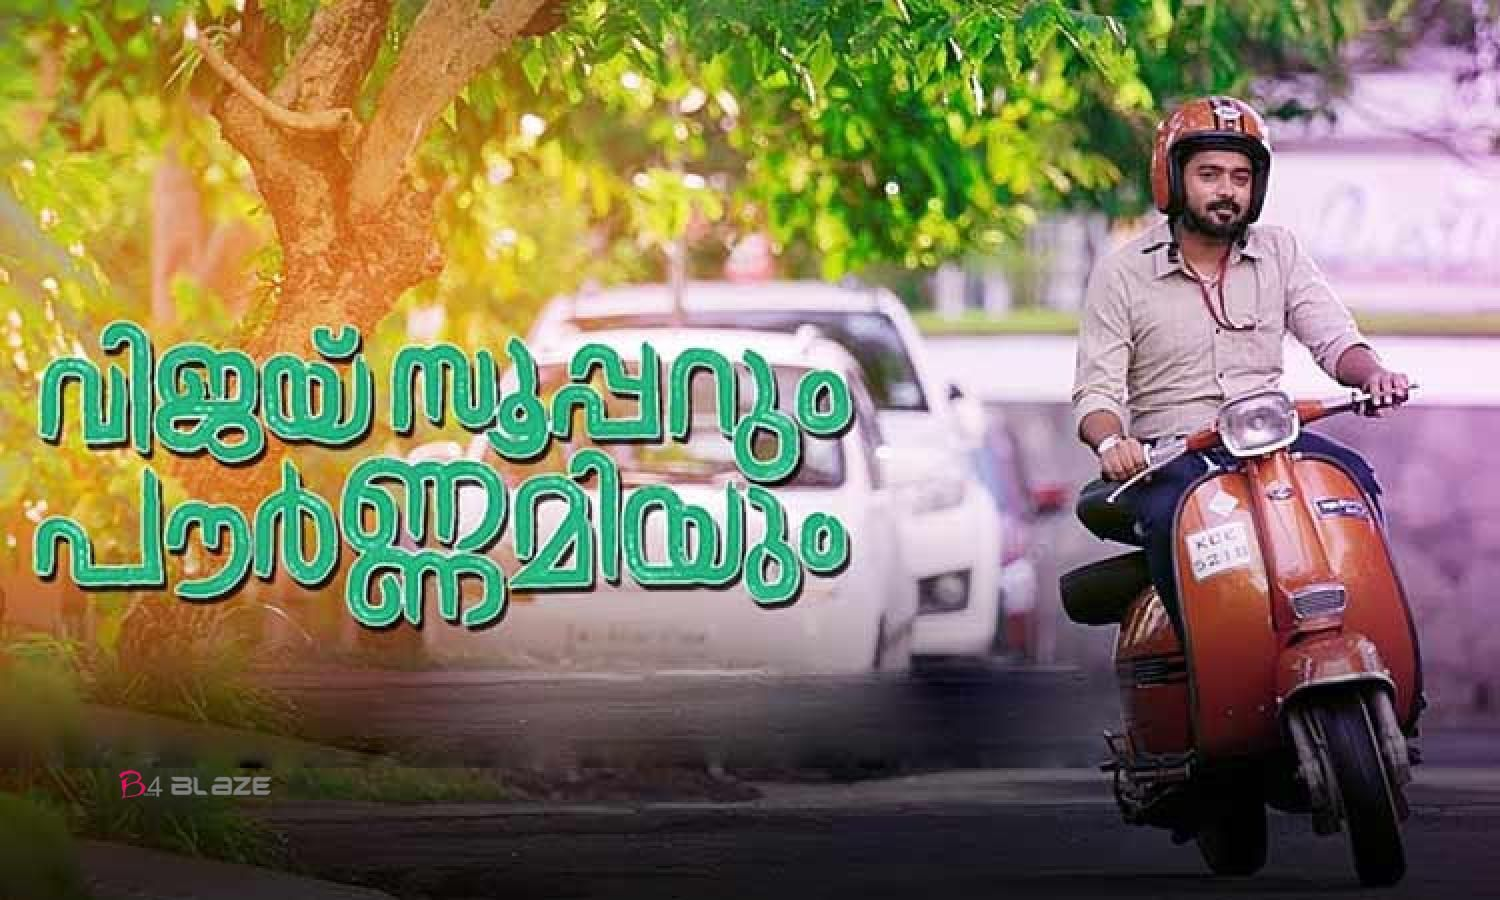 Vijay Superum Pournamiyum is an Indian Malayalam-language film written and directed by Jis Joy, starring Asif Ali, Aishwarya Lekshmi, Balu Varghese and Aju Varghese in the lead roles. The film has musical score composed by Prince George. The film was produced by A. K. Sunil under the banner of New... The post Vijay Superum Pournamiyum Box Office Collection Report, Review & Rating… appeared first on B4blaze.